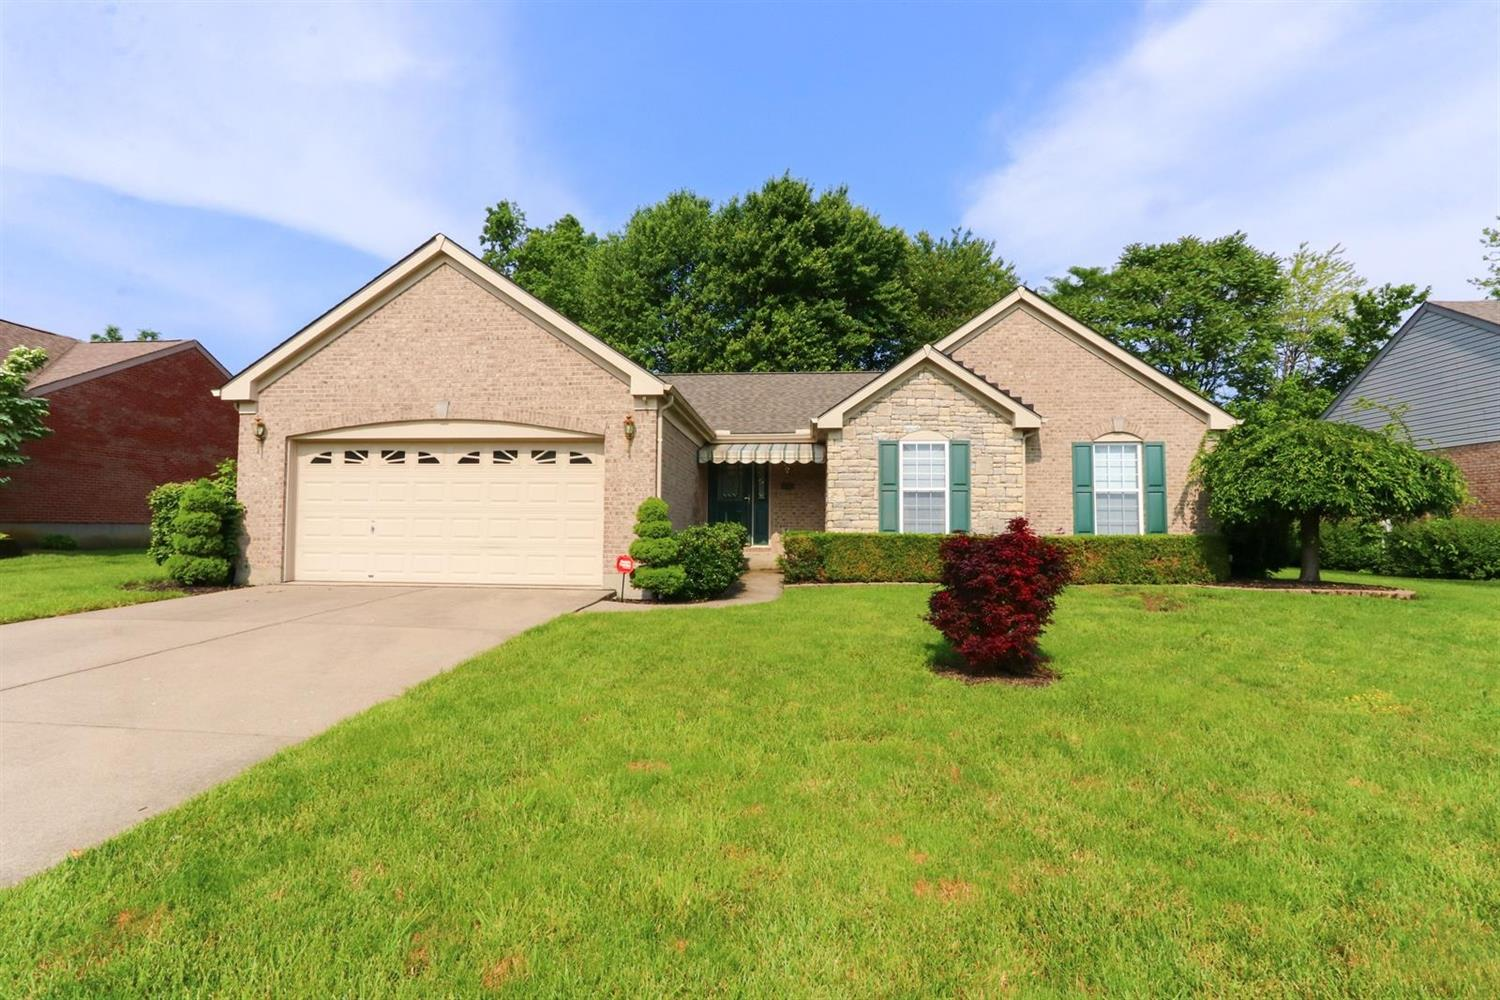 4137 Brandonmore Dr Union Twp. (Clermont), OH